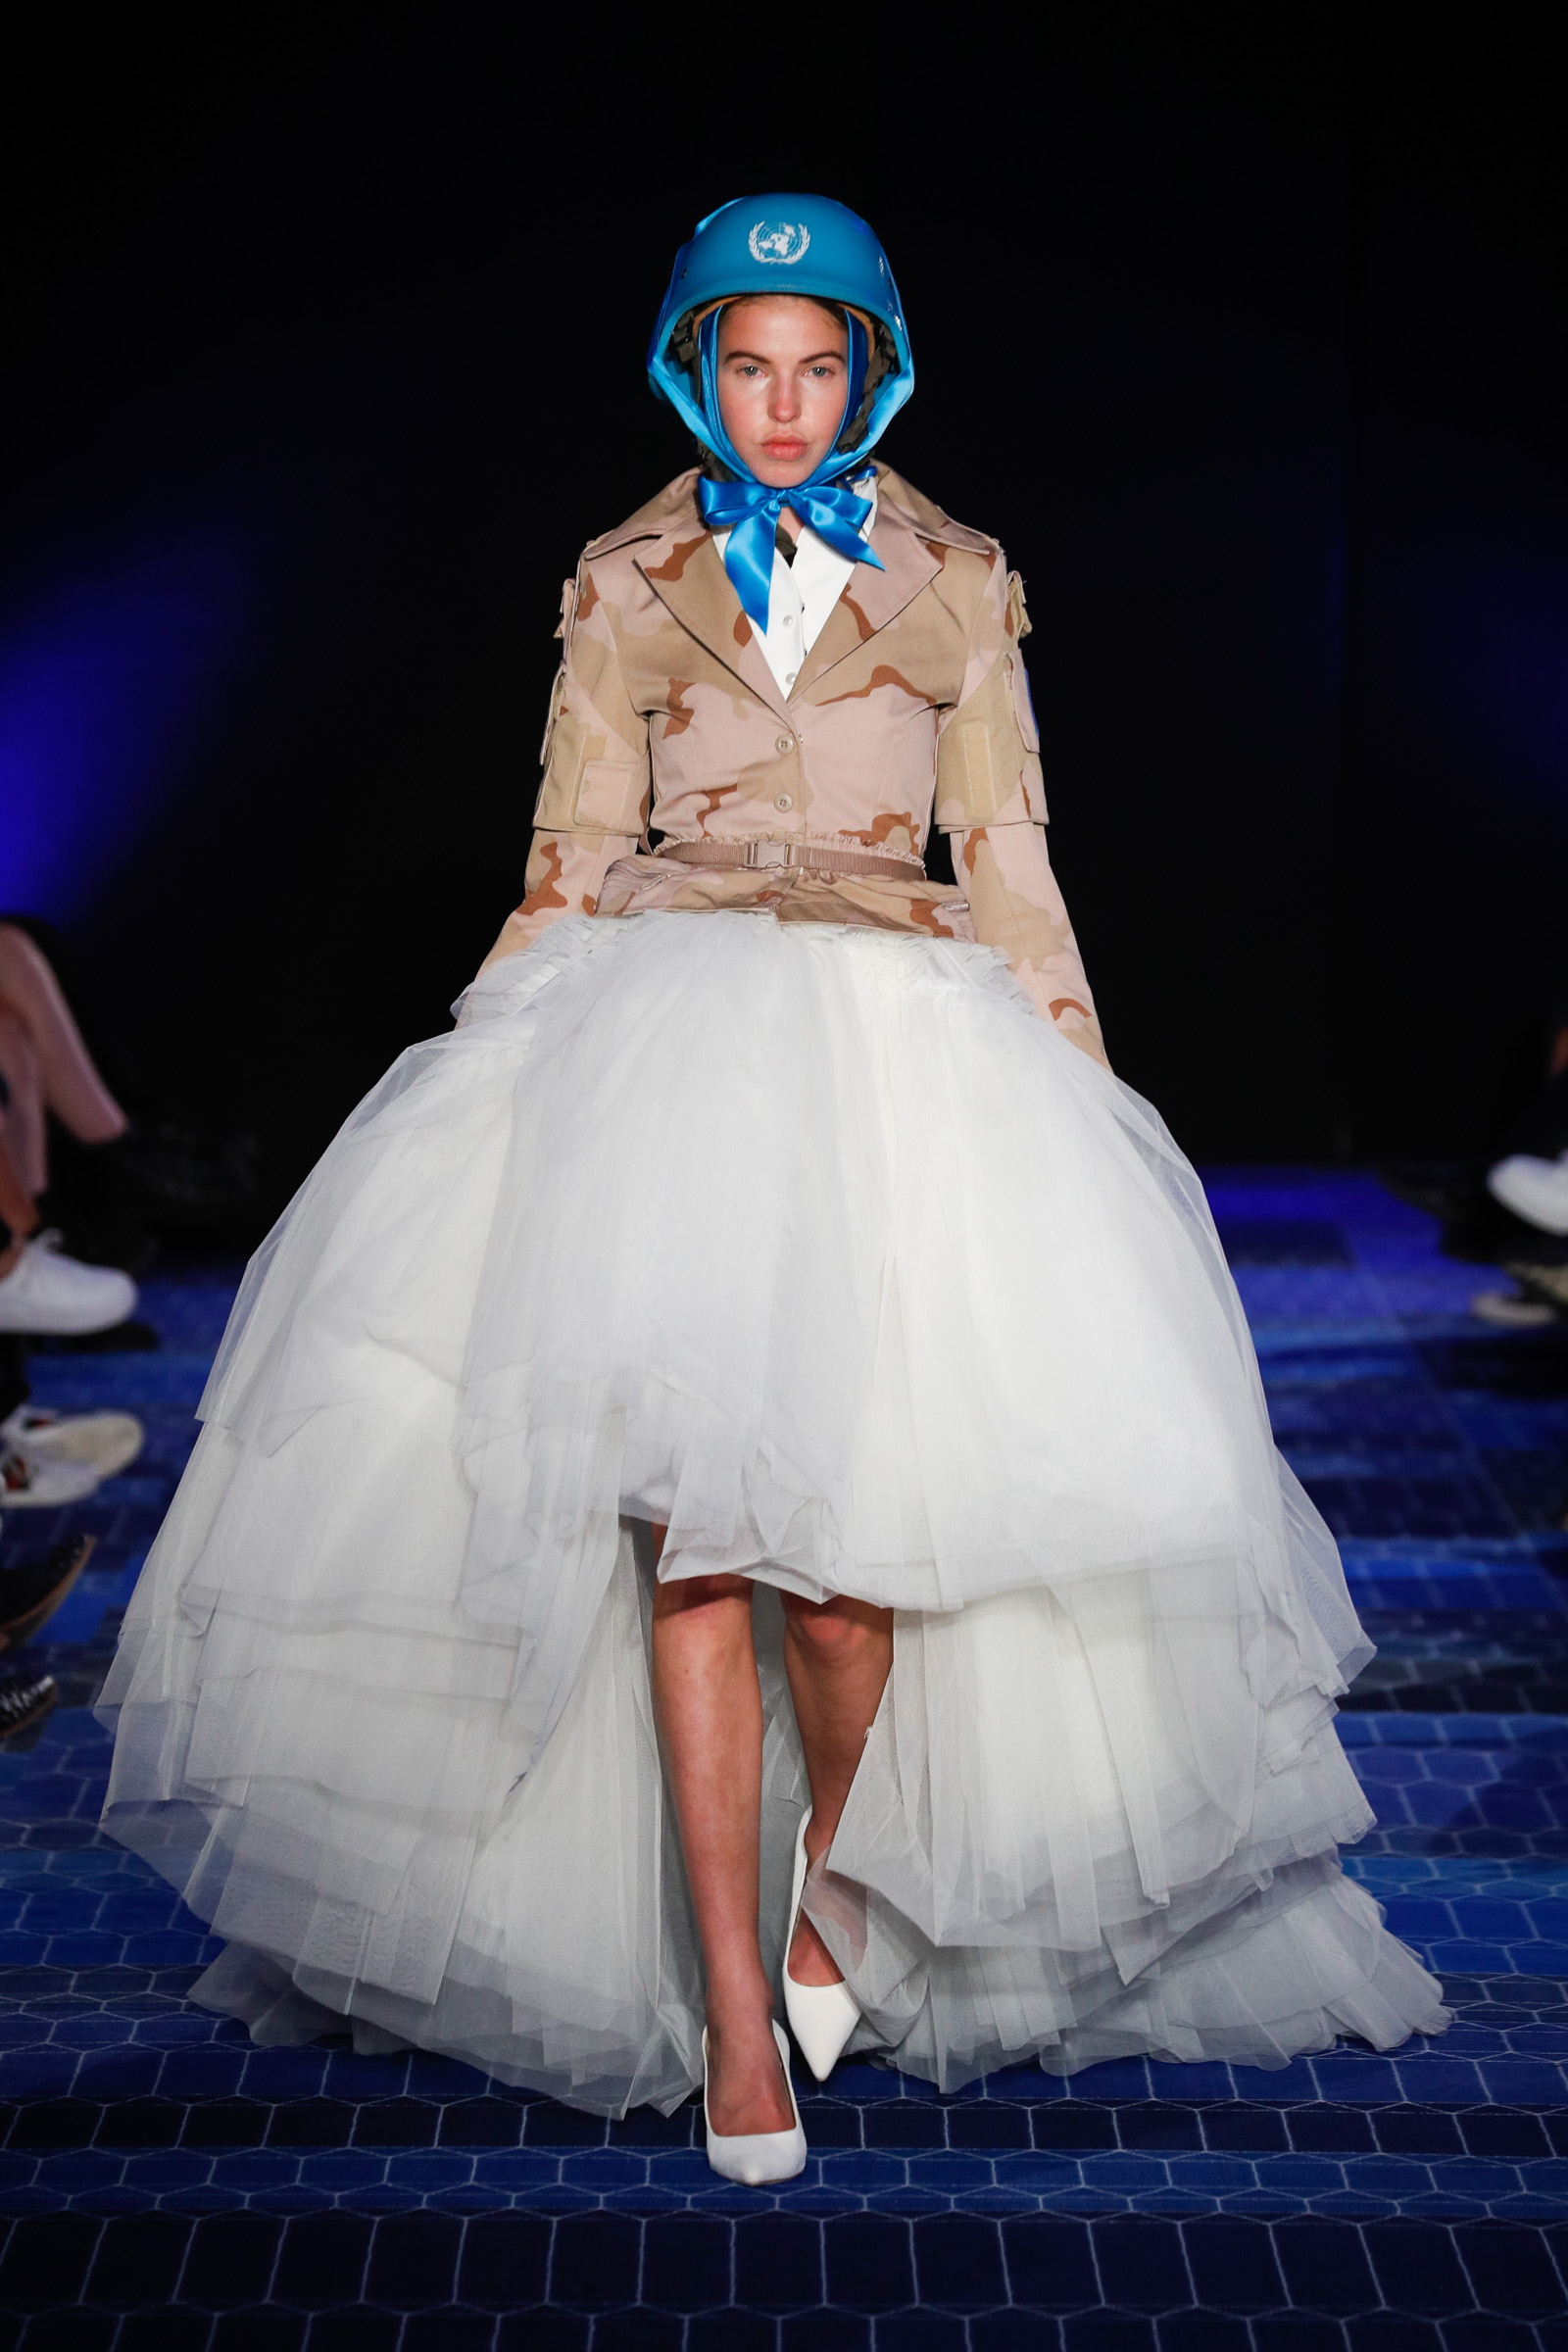 Benchellal at Dutch Sustainable Fashion Week | Team Peter